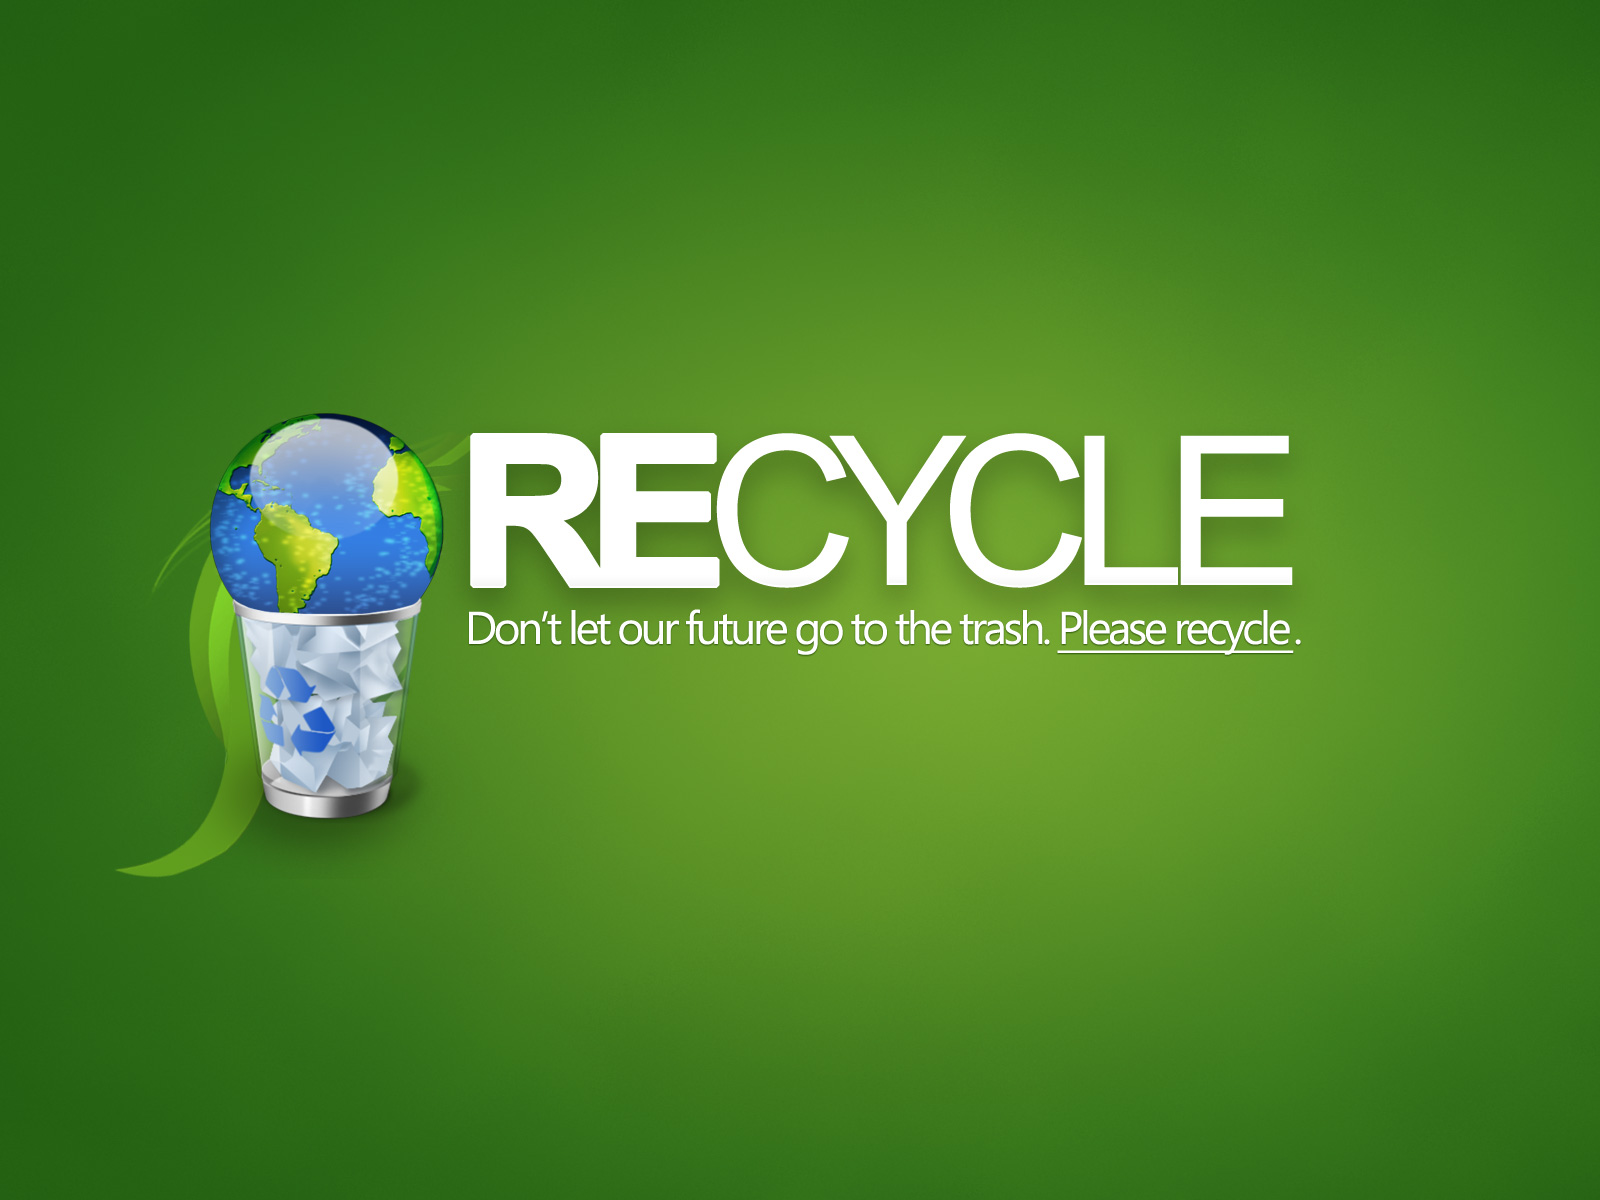 Recycle wallpaper 68019